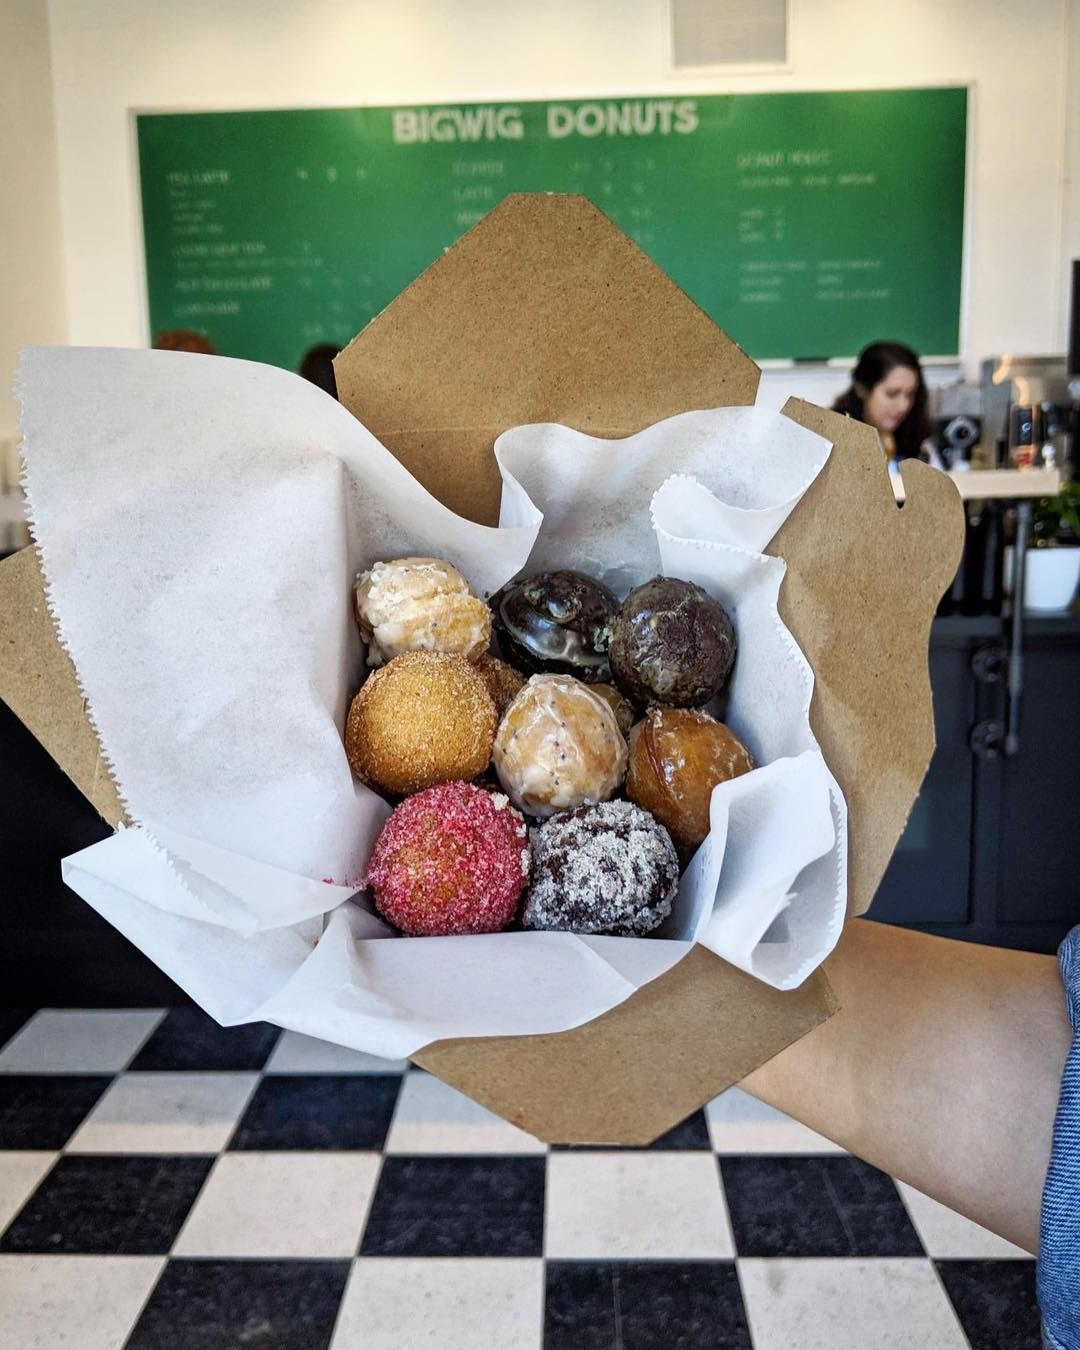 Bigwig Donuts' downtown Salem storefront is open! You'll